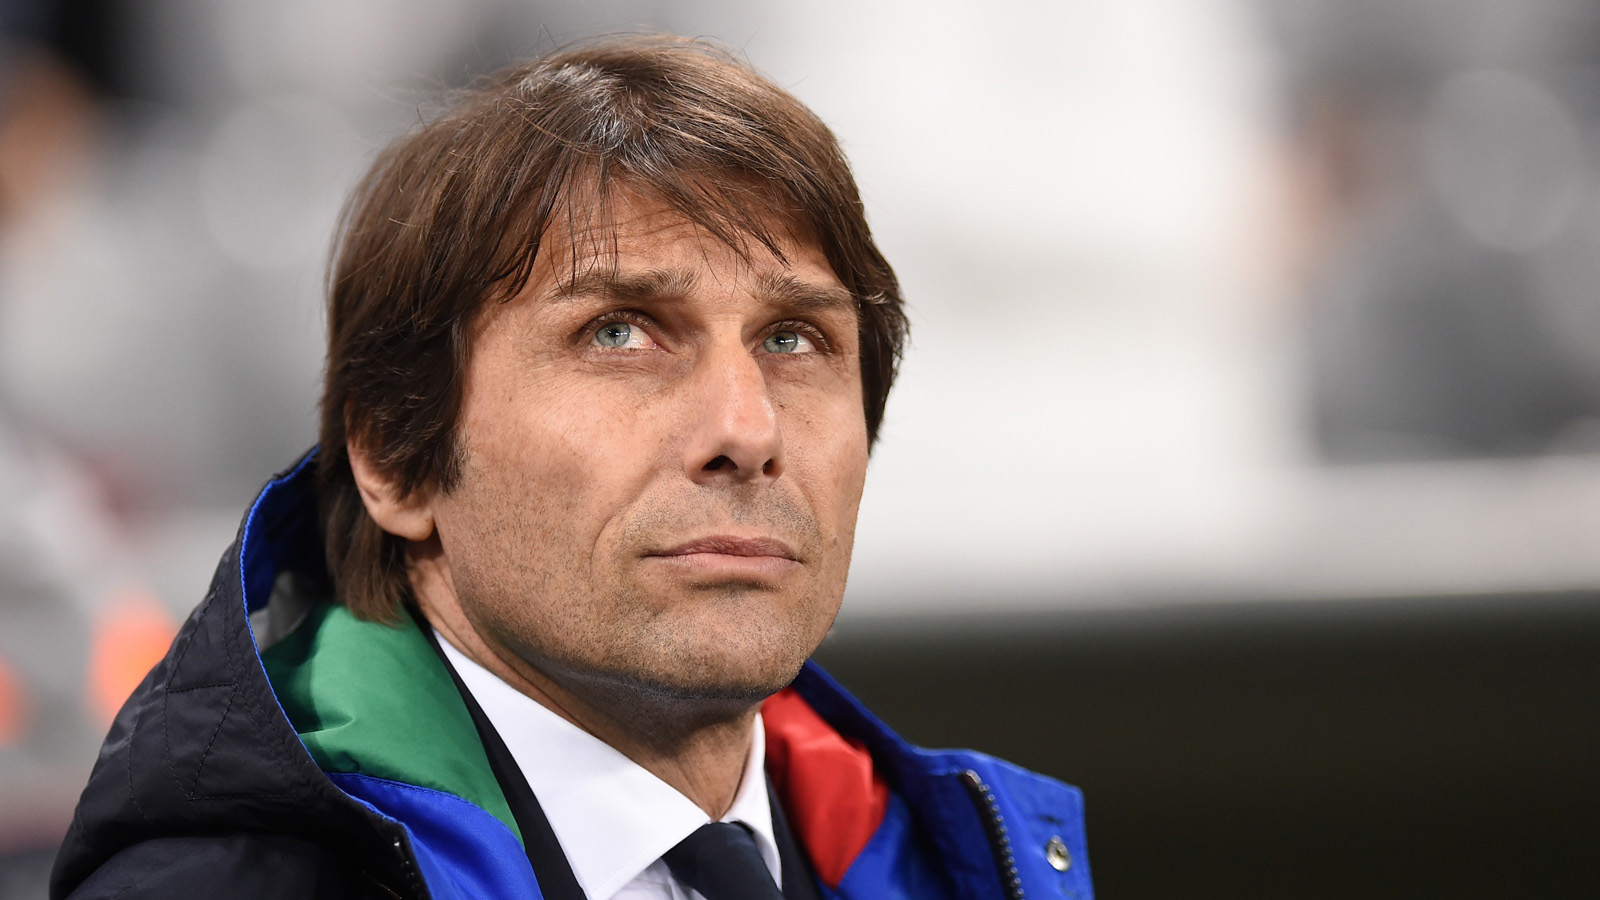 Antonio Conte's Italy is long on workrate but short on attacking talent